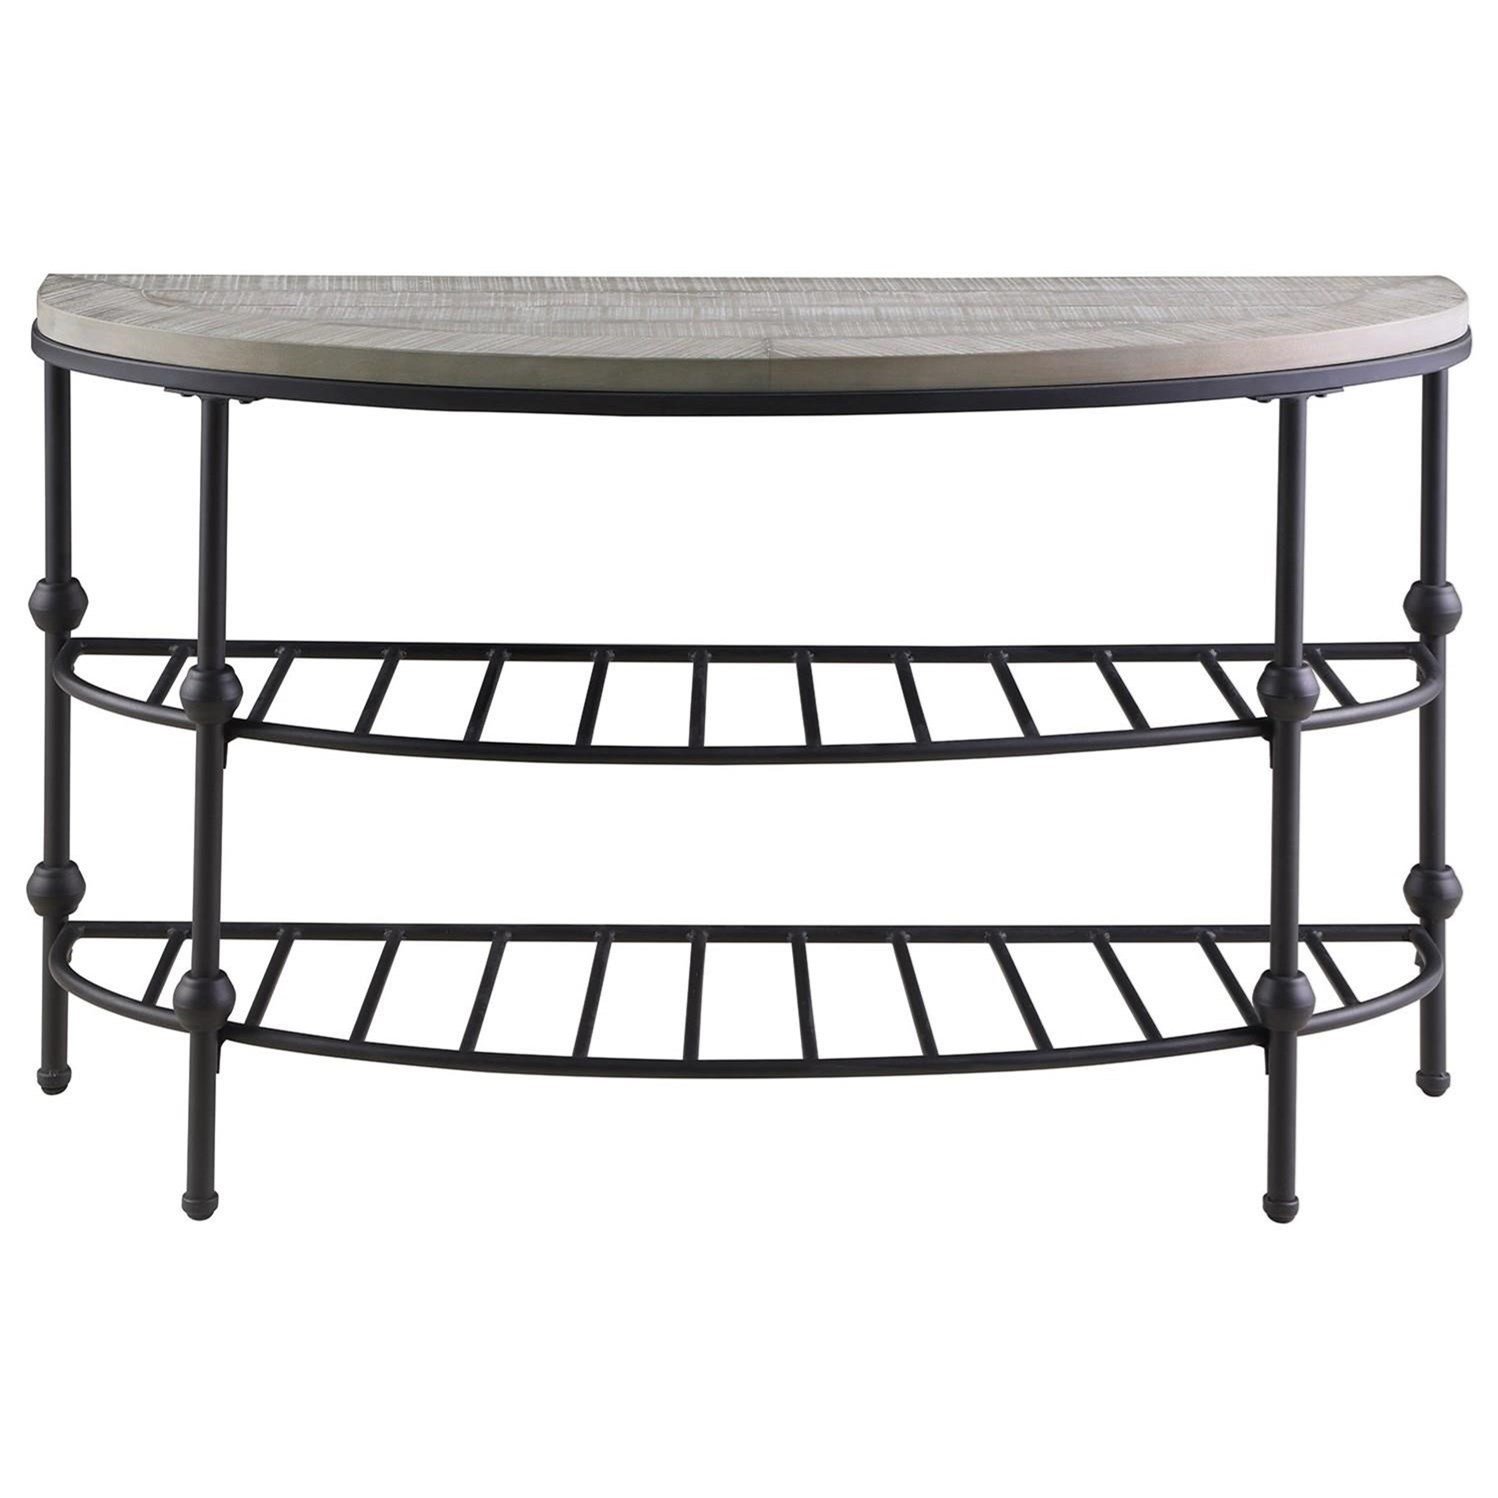 Cutter Sofa Table Half Moon by Emerald at Northeast Factory Direct